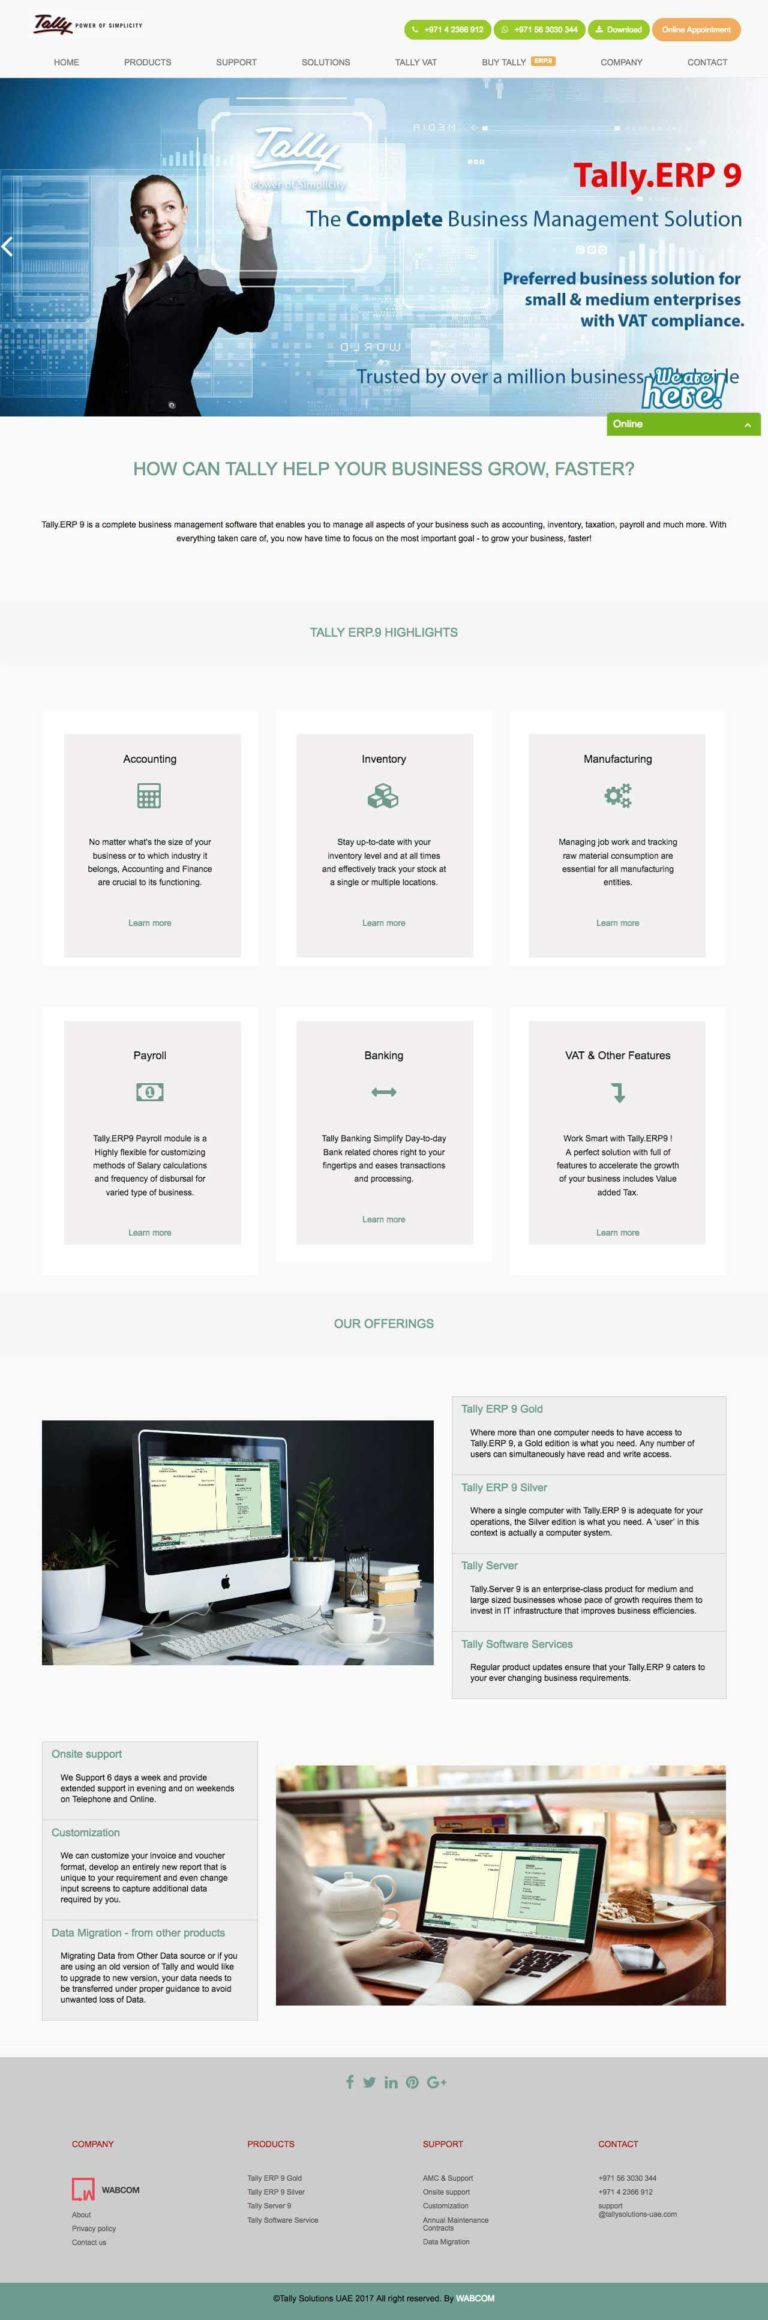 Website UI design